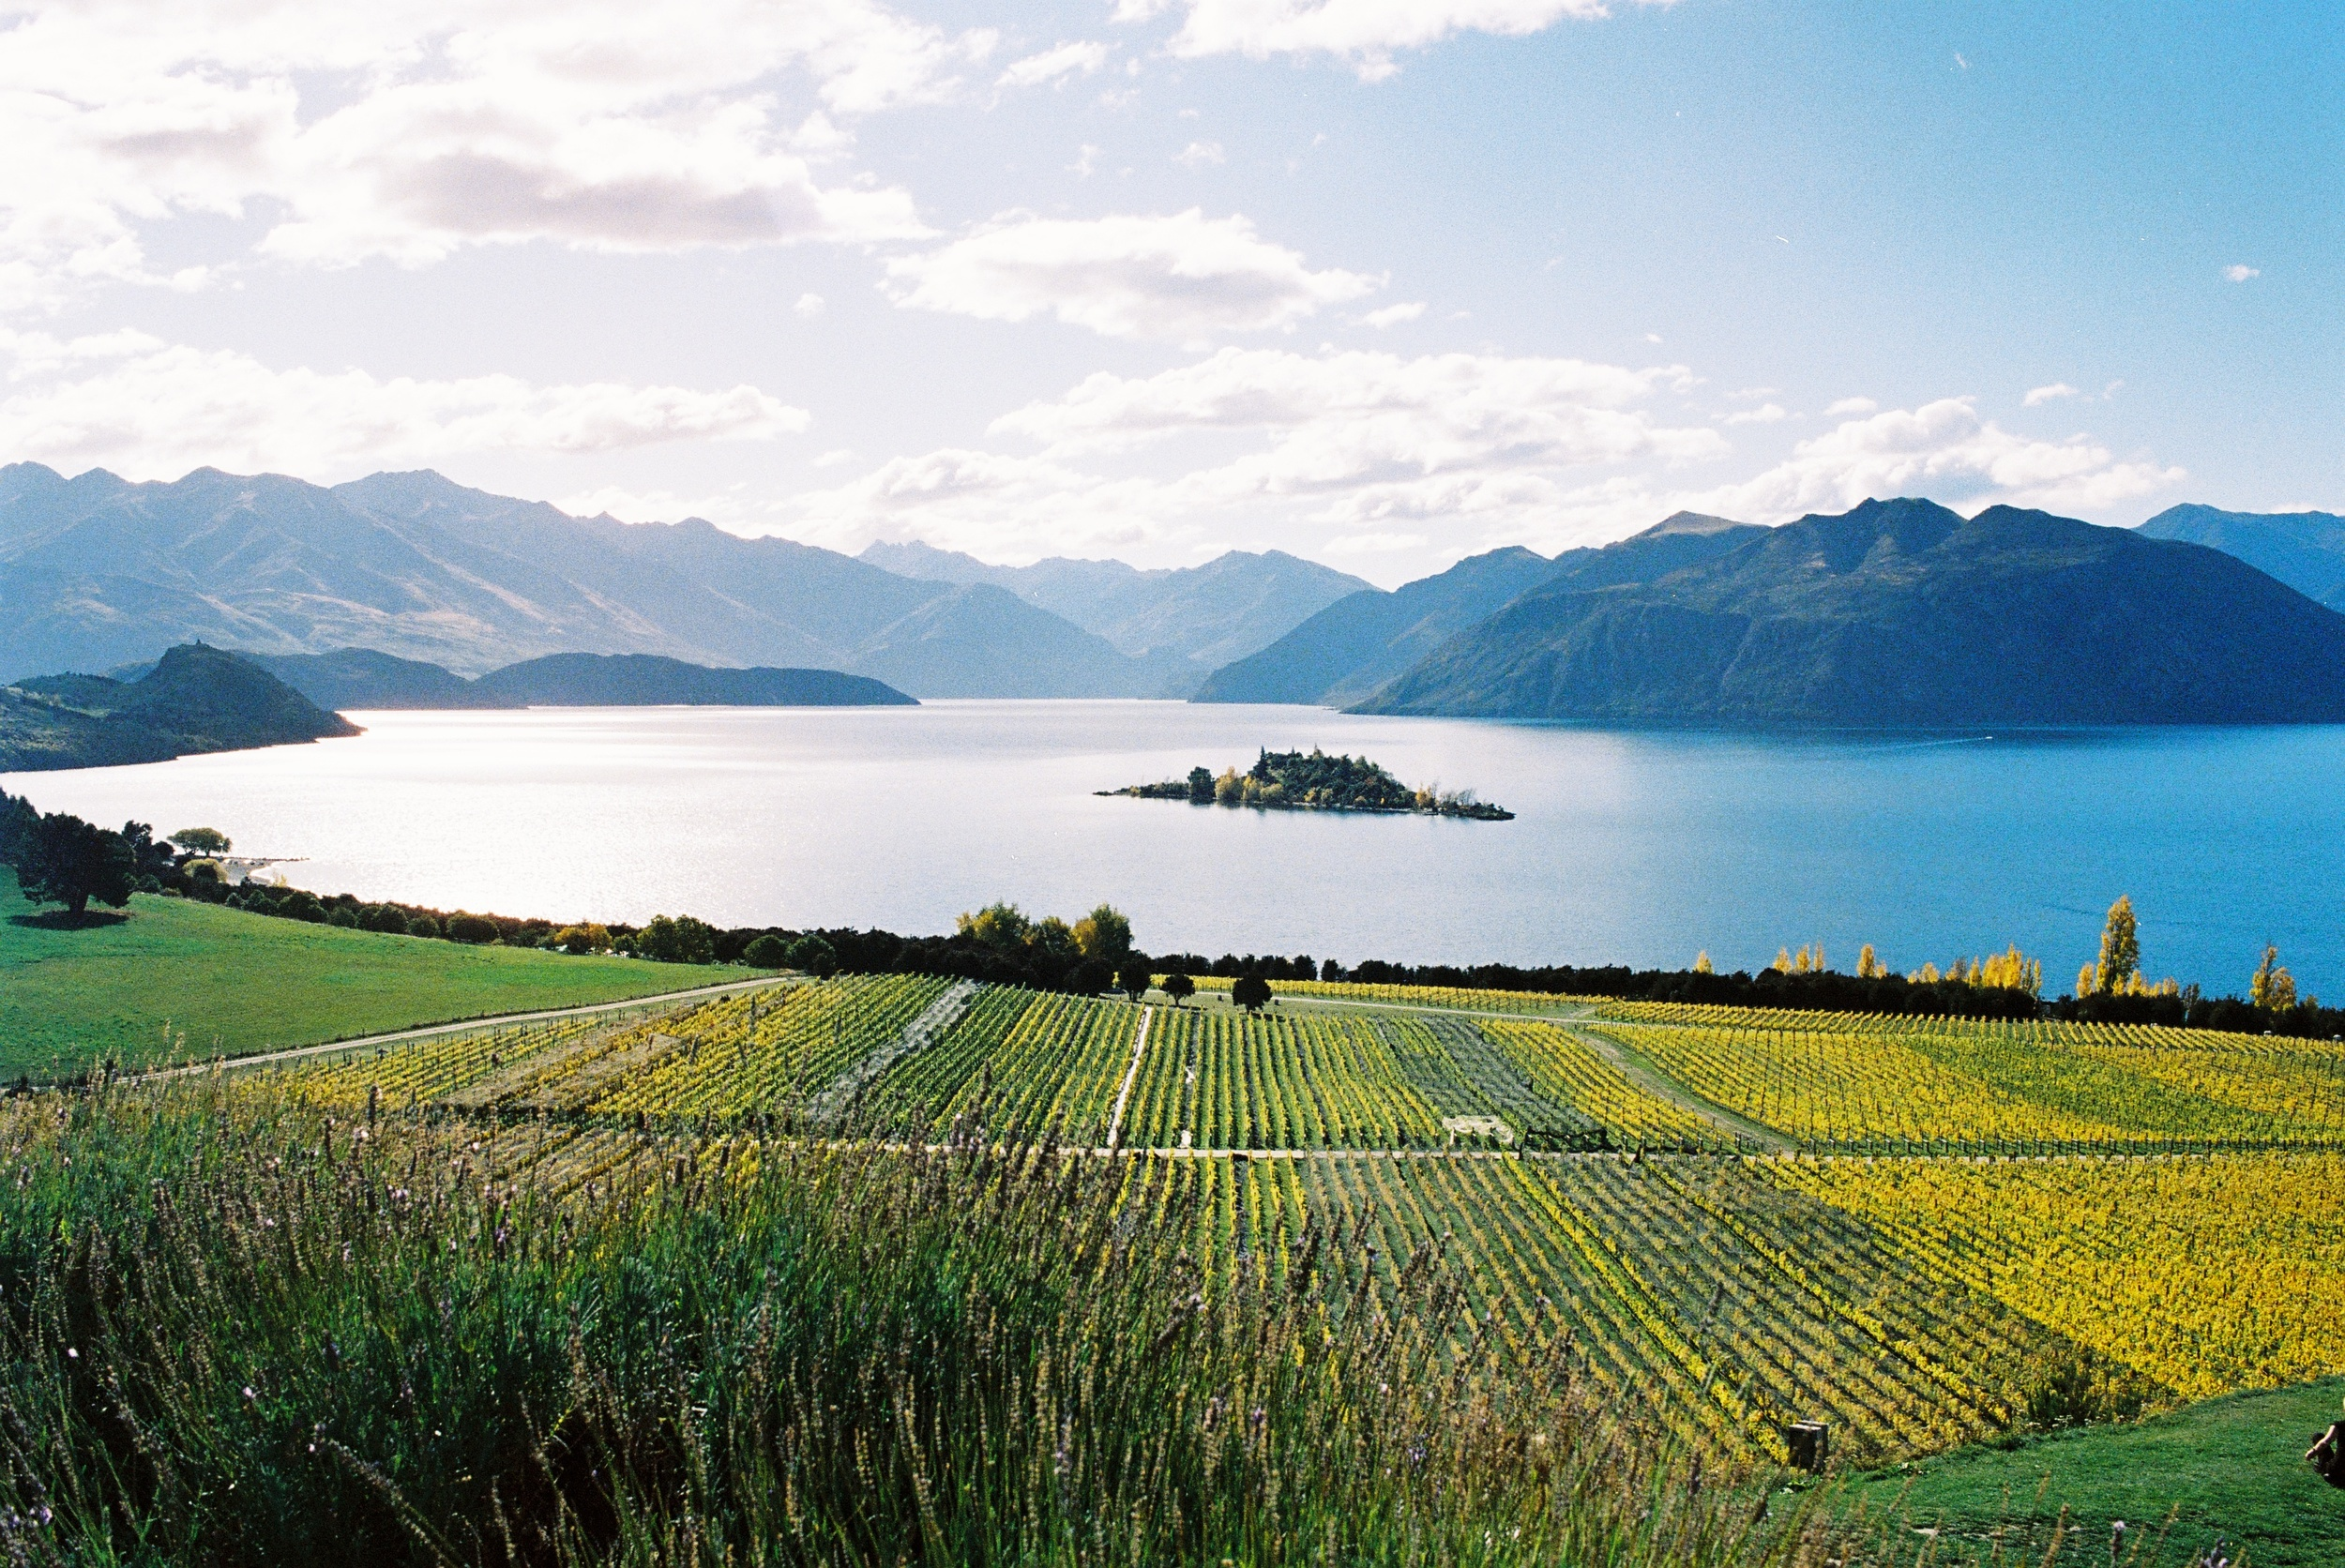 The view from Rippon Winery at Lake Wanaka